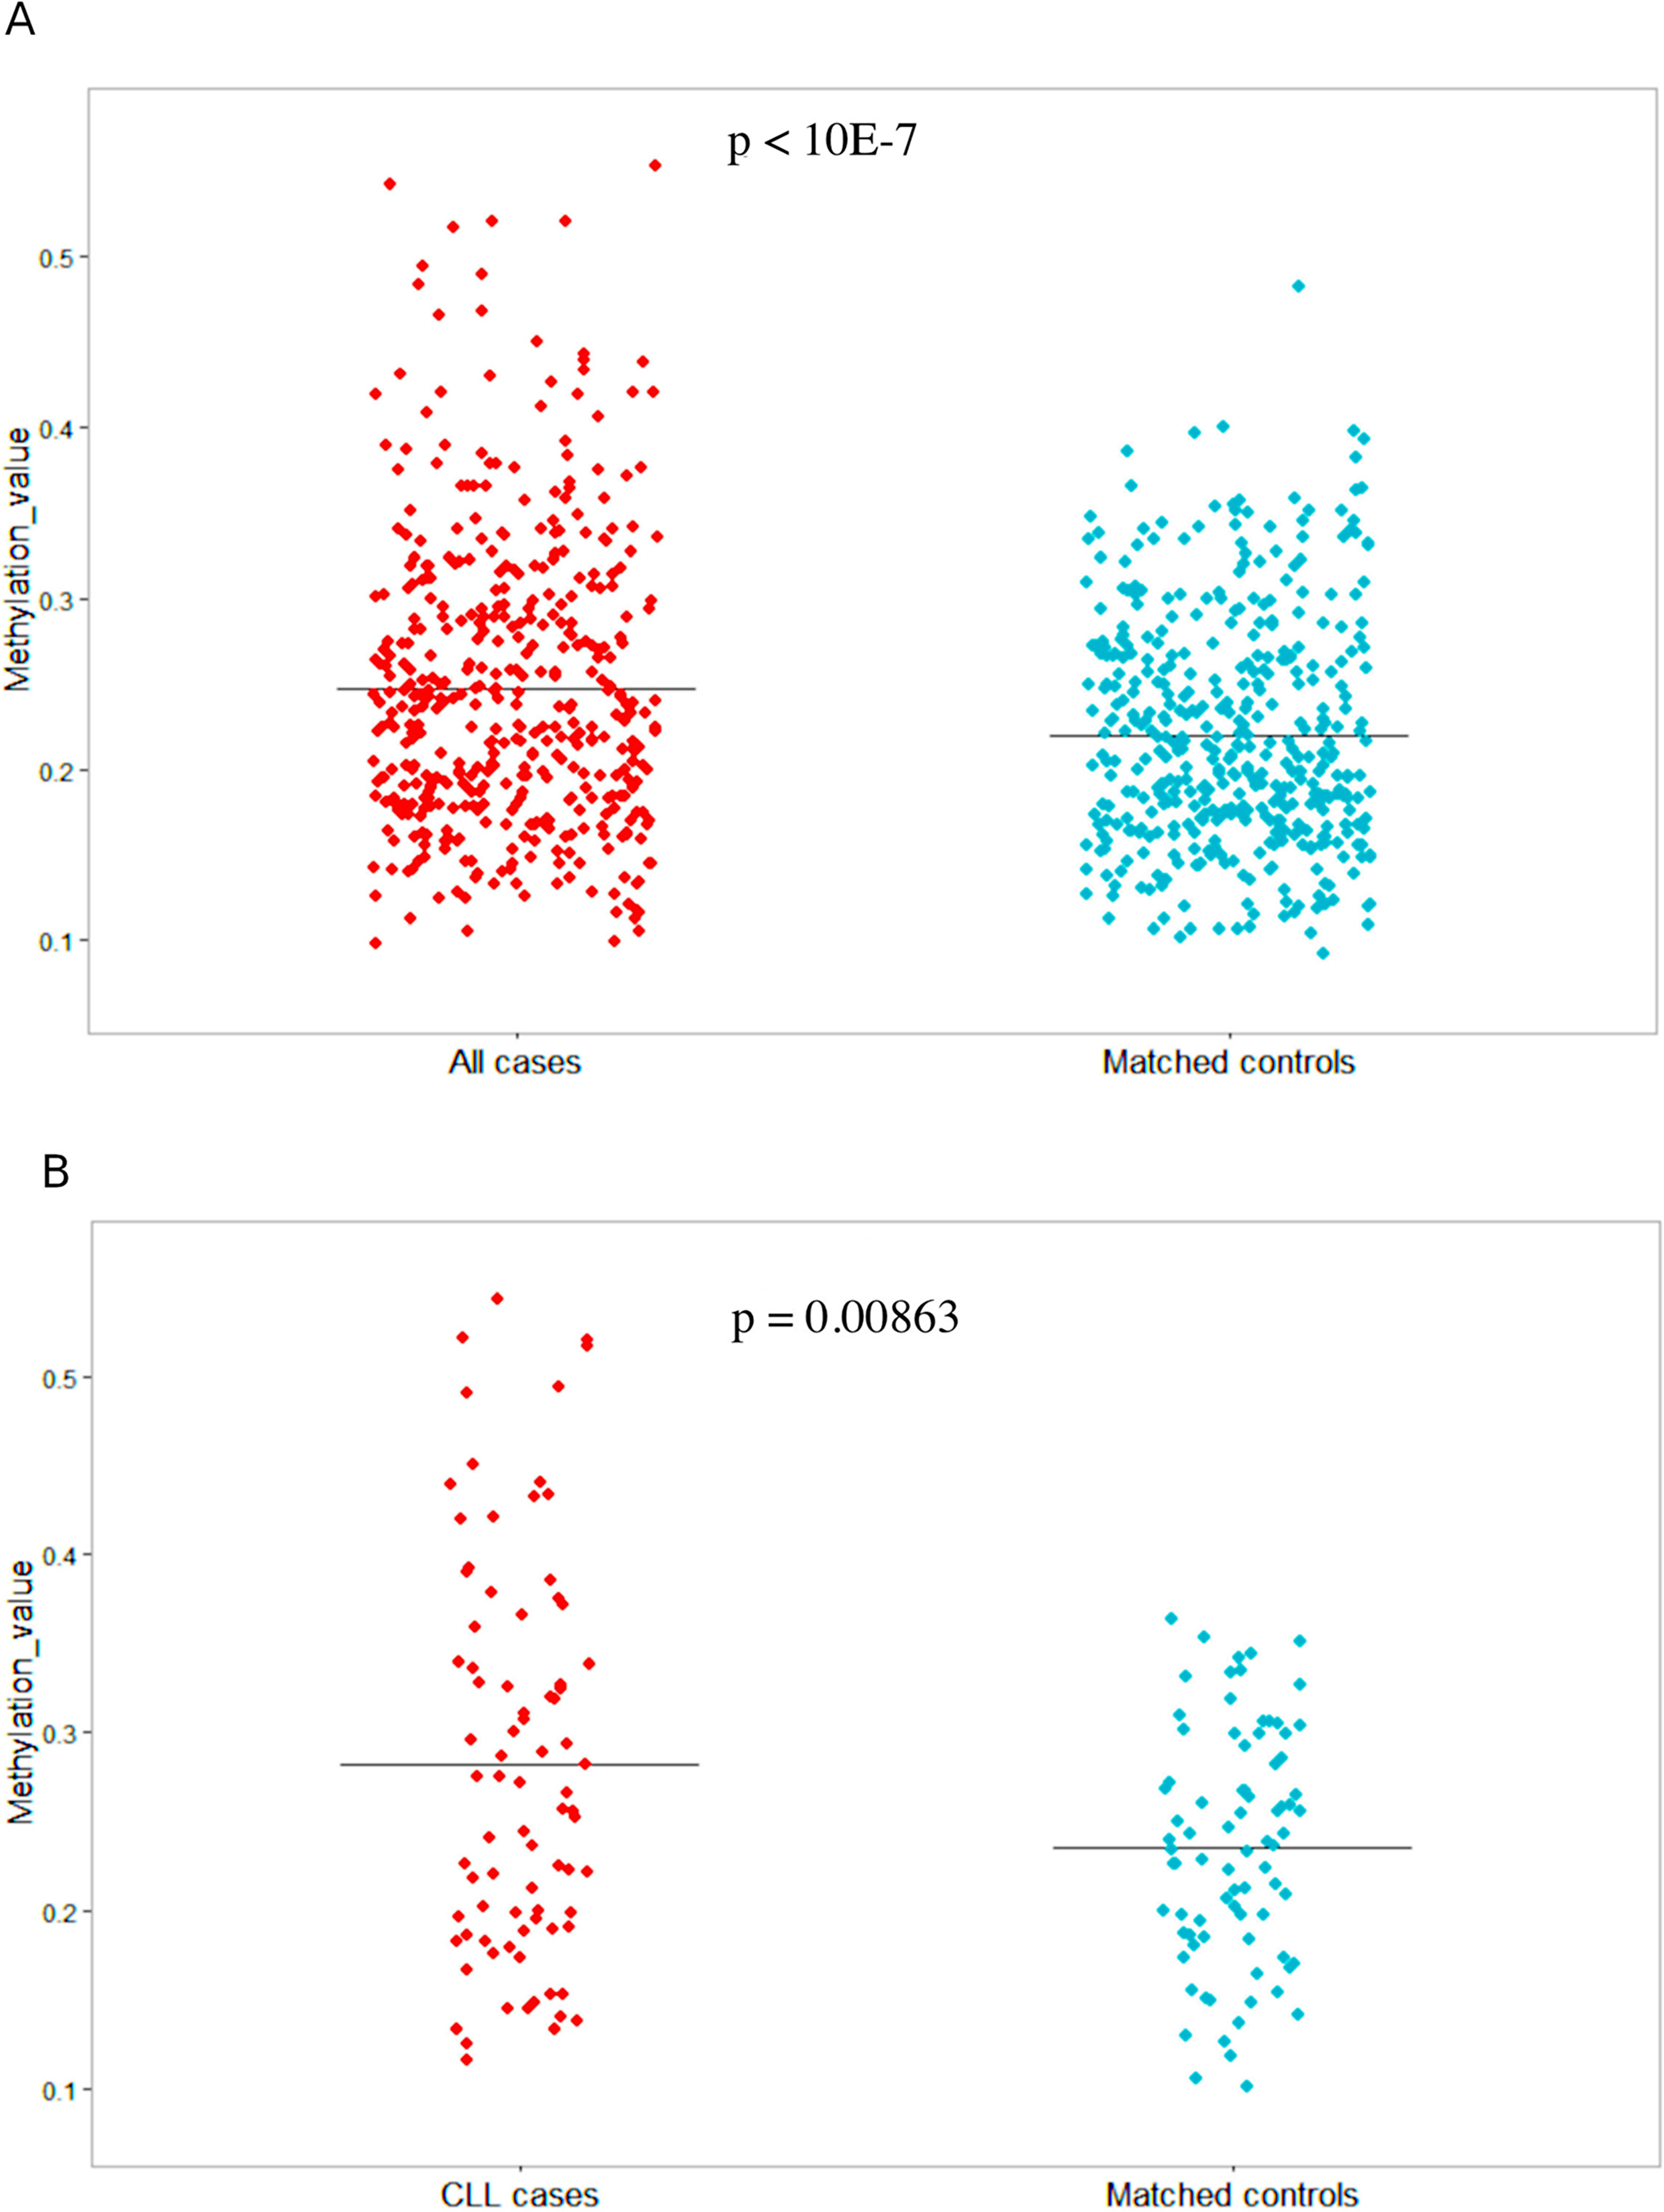 SHANK1 methylation values in 438 MBCN cases/controls and the 82 CLL/SLL cases and controls.